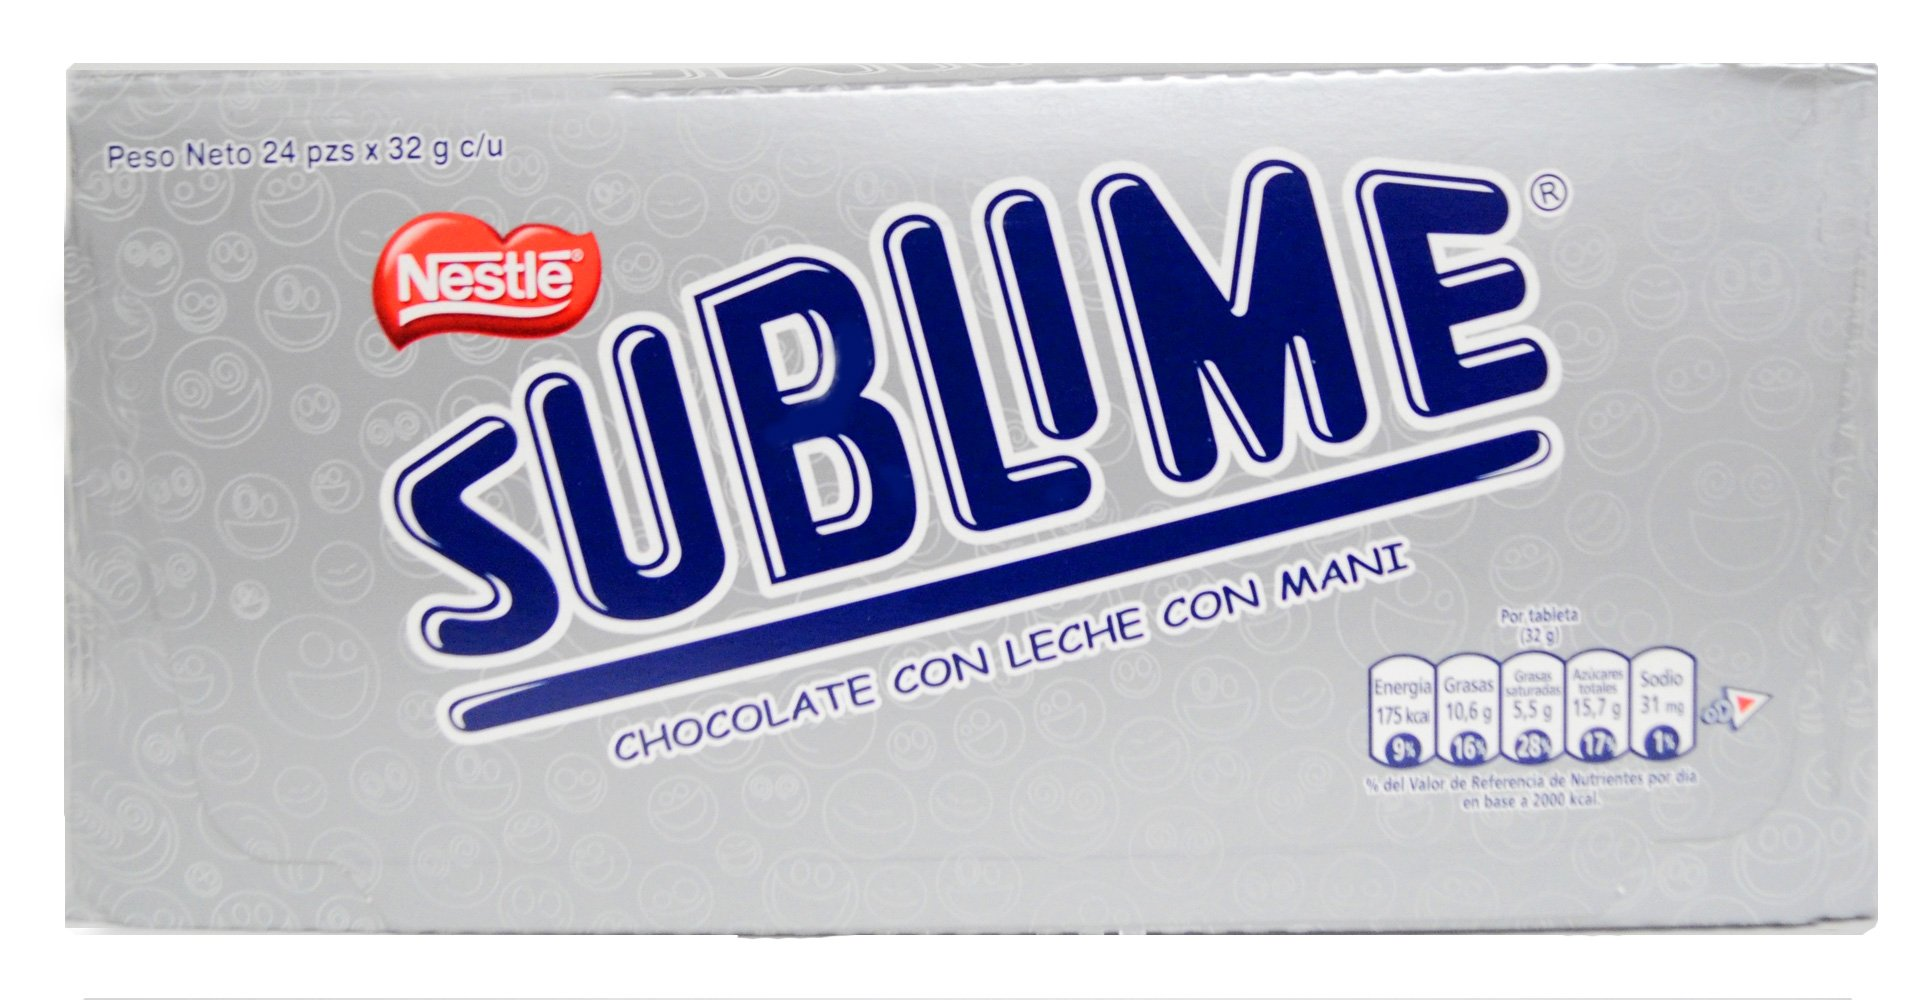 Sublime Chocolate Peru Con Leche Y Mani/chocolate with Milk and Peanuts 2 boxes of 24 pieces ea